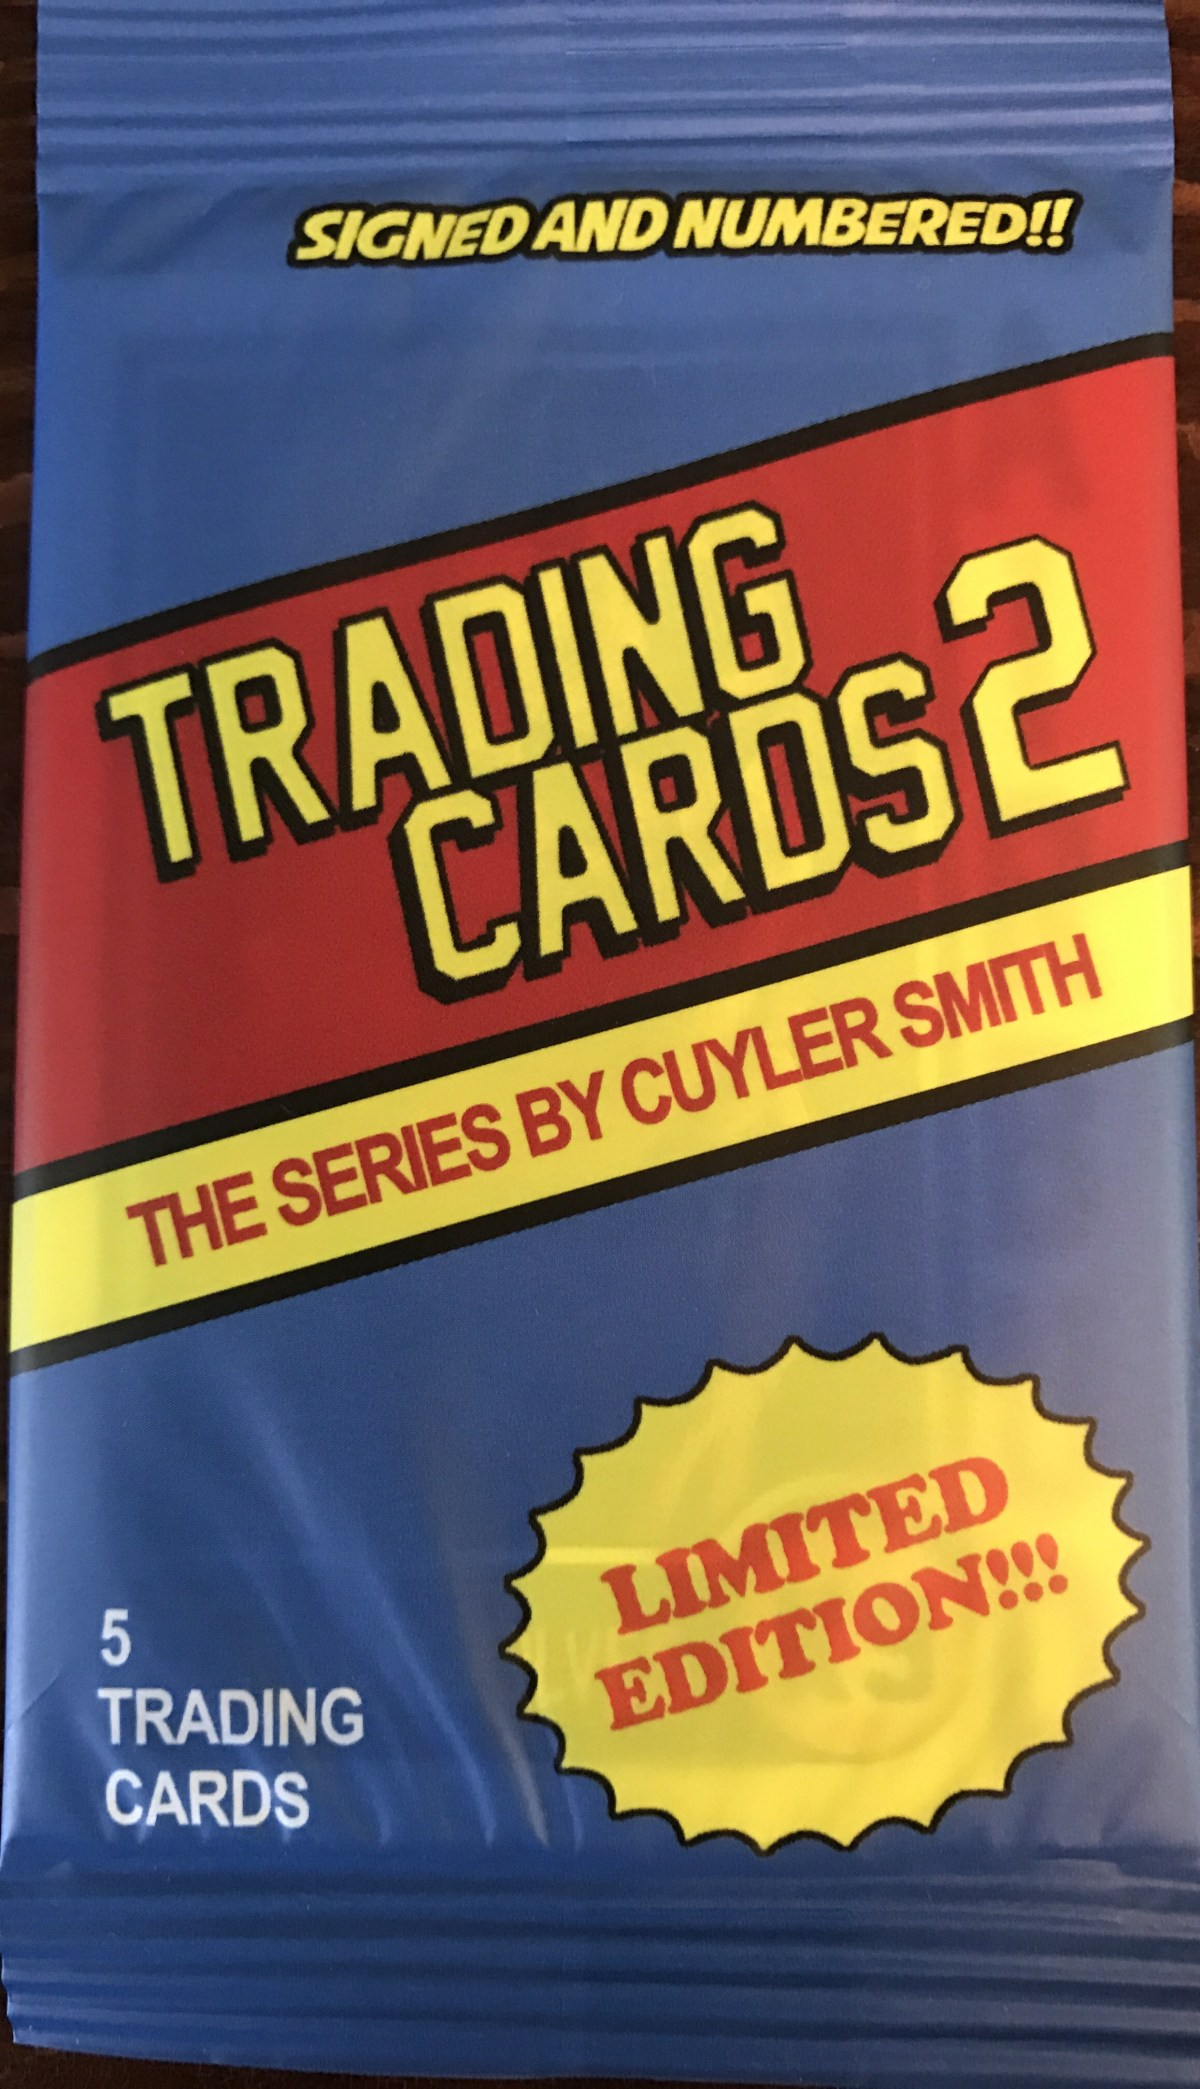 Mail Day Review – Cuyler Smith Trading Cards Series 2